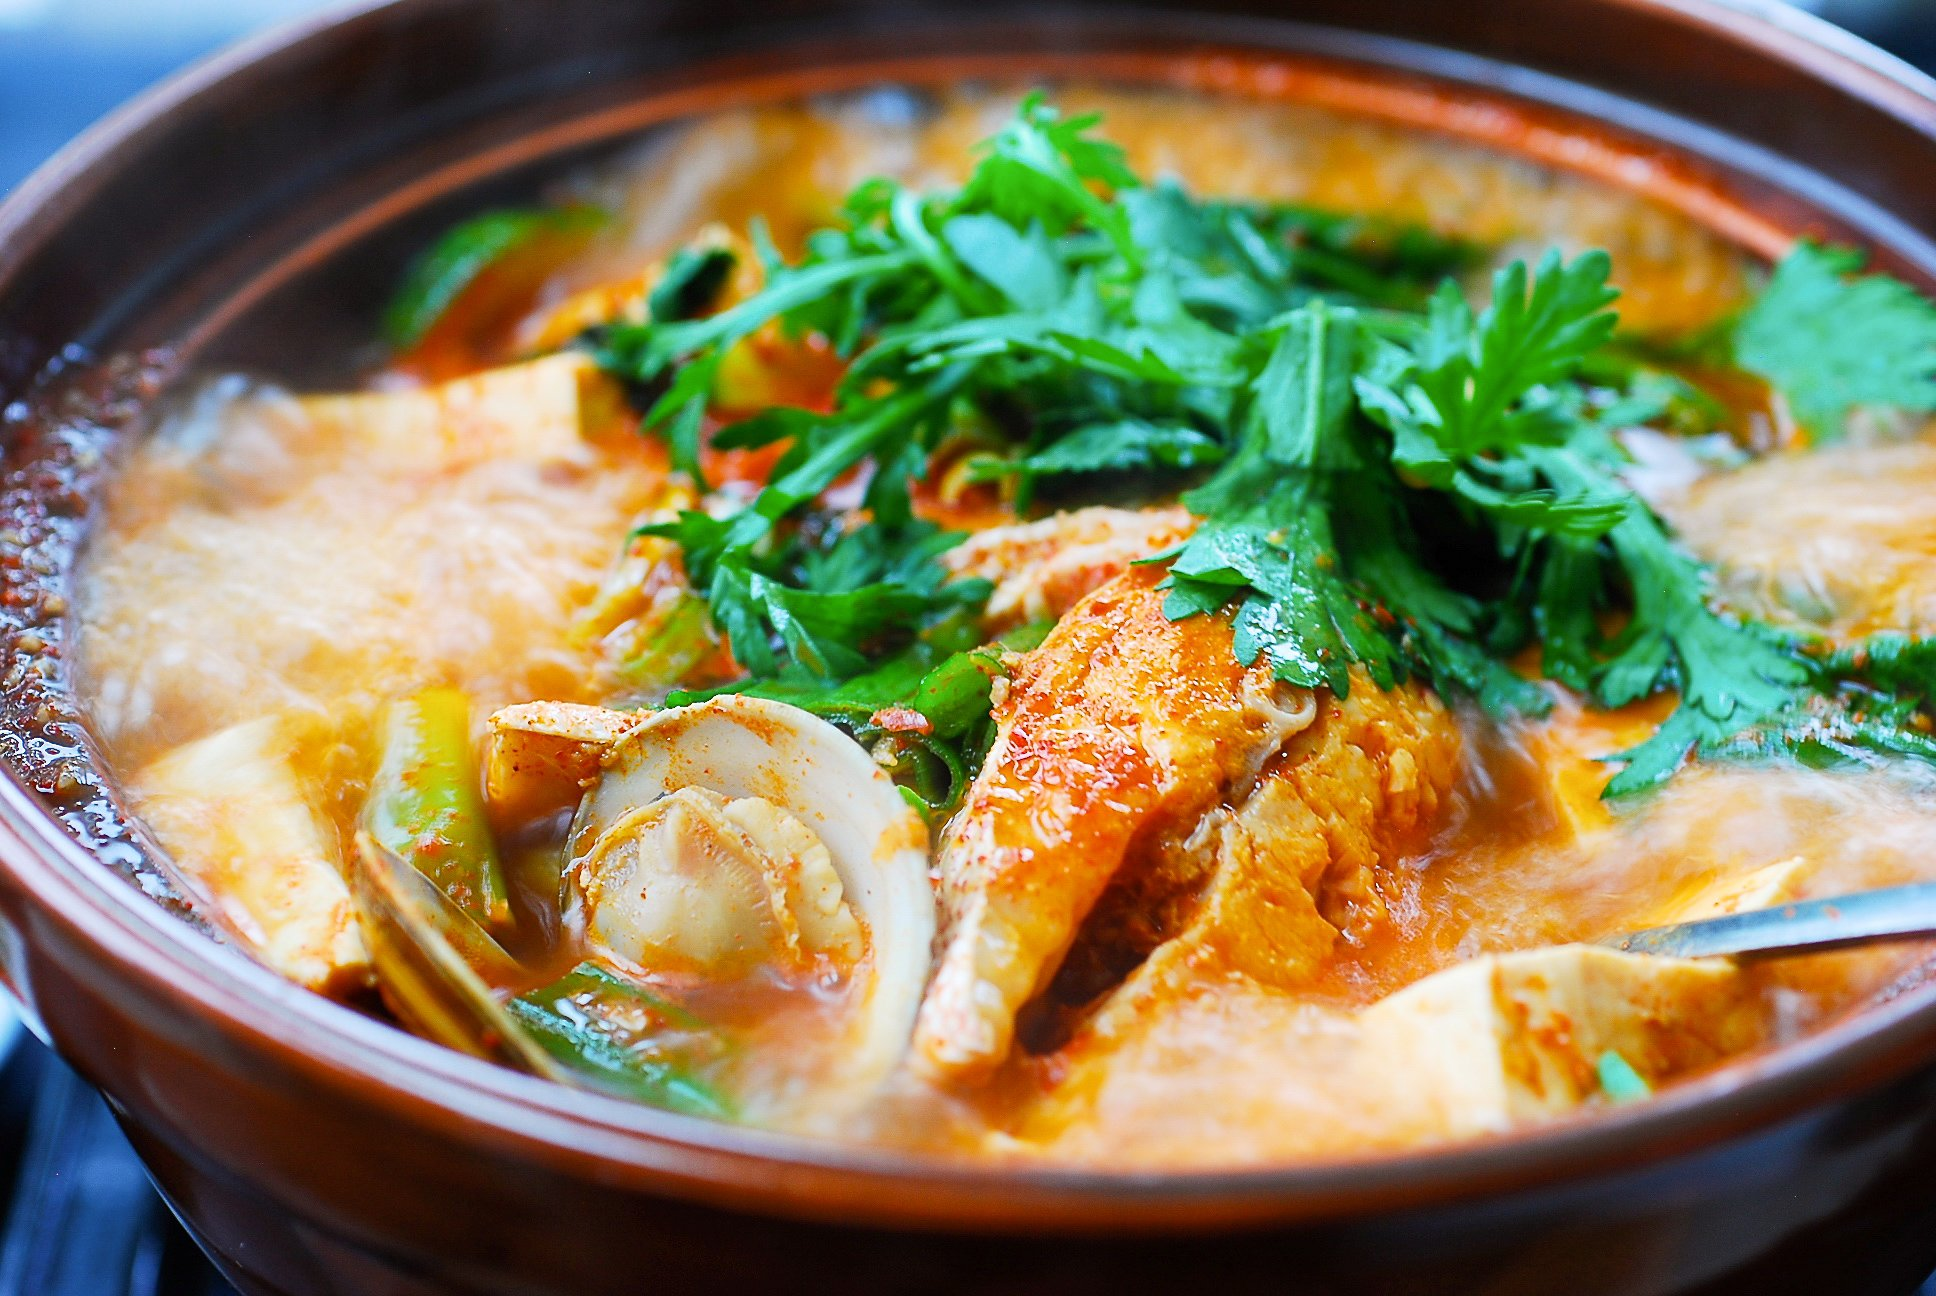 DSC 2704 2 - Domi Maeuntang (Spicy Fish Stew with Red Snapper)